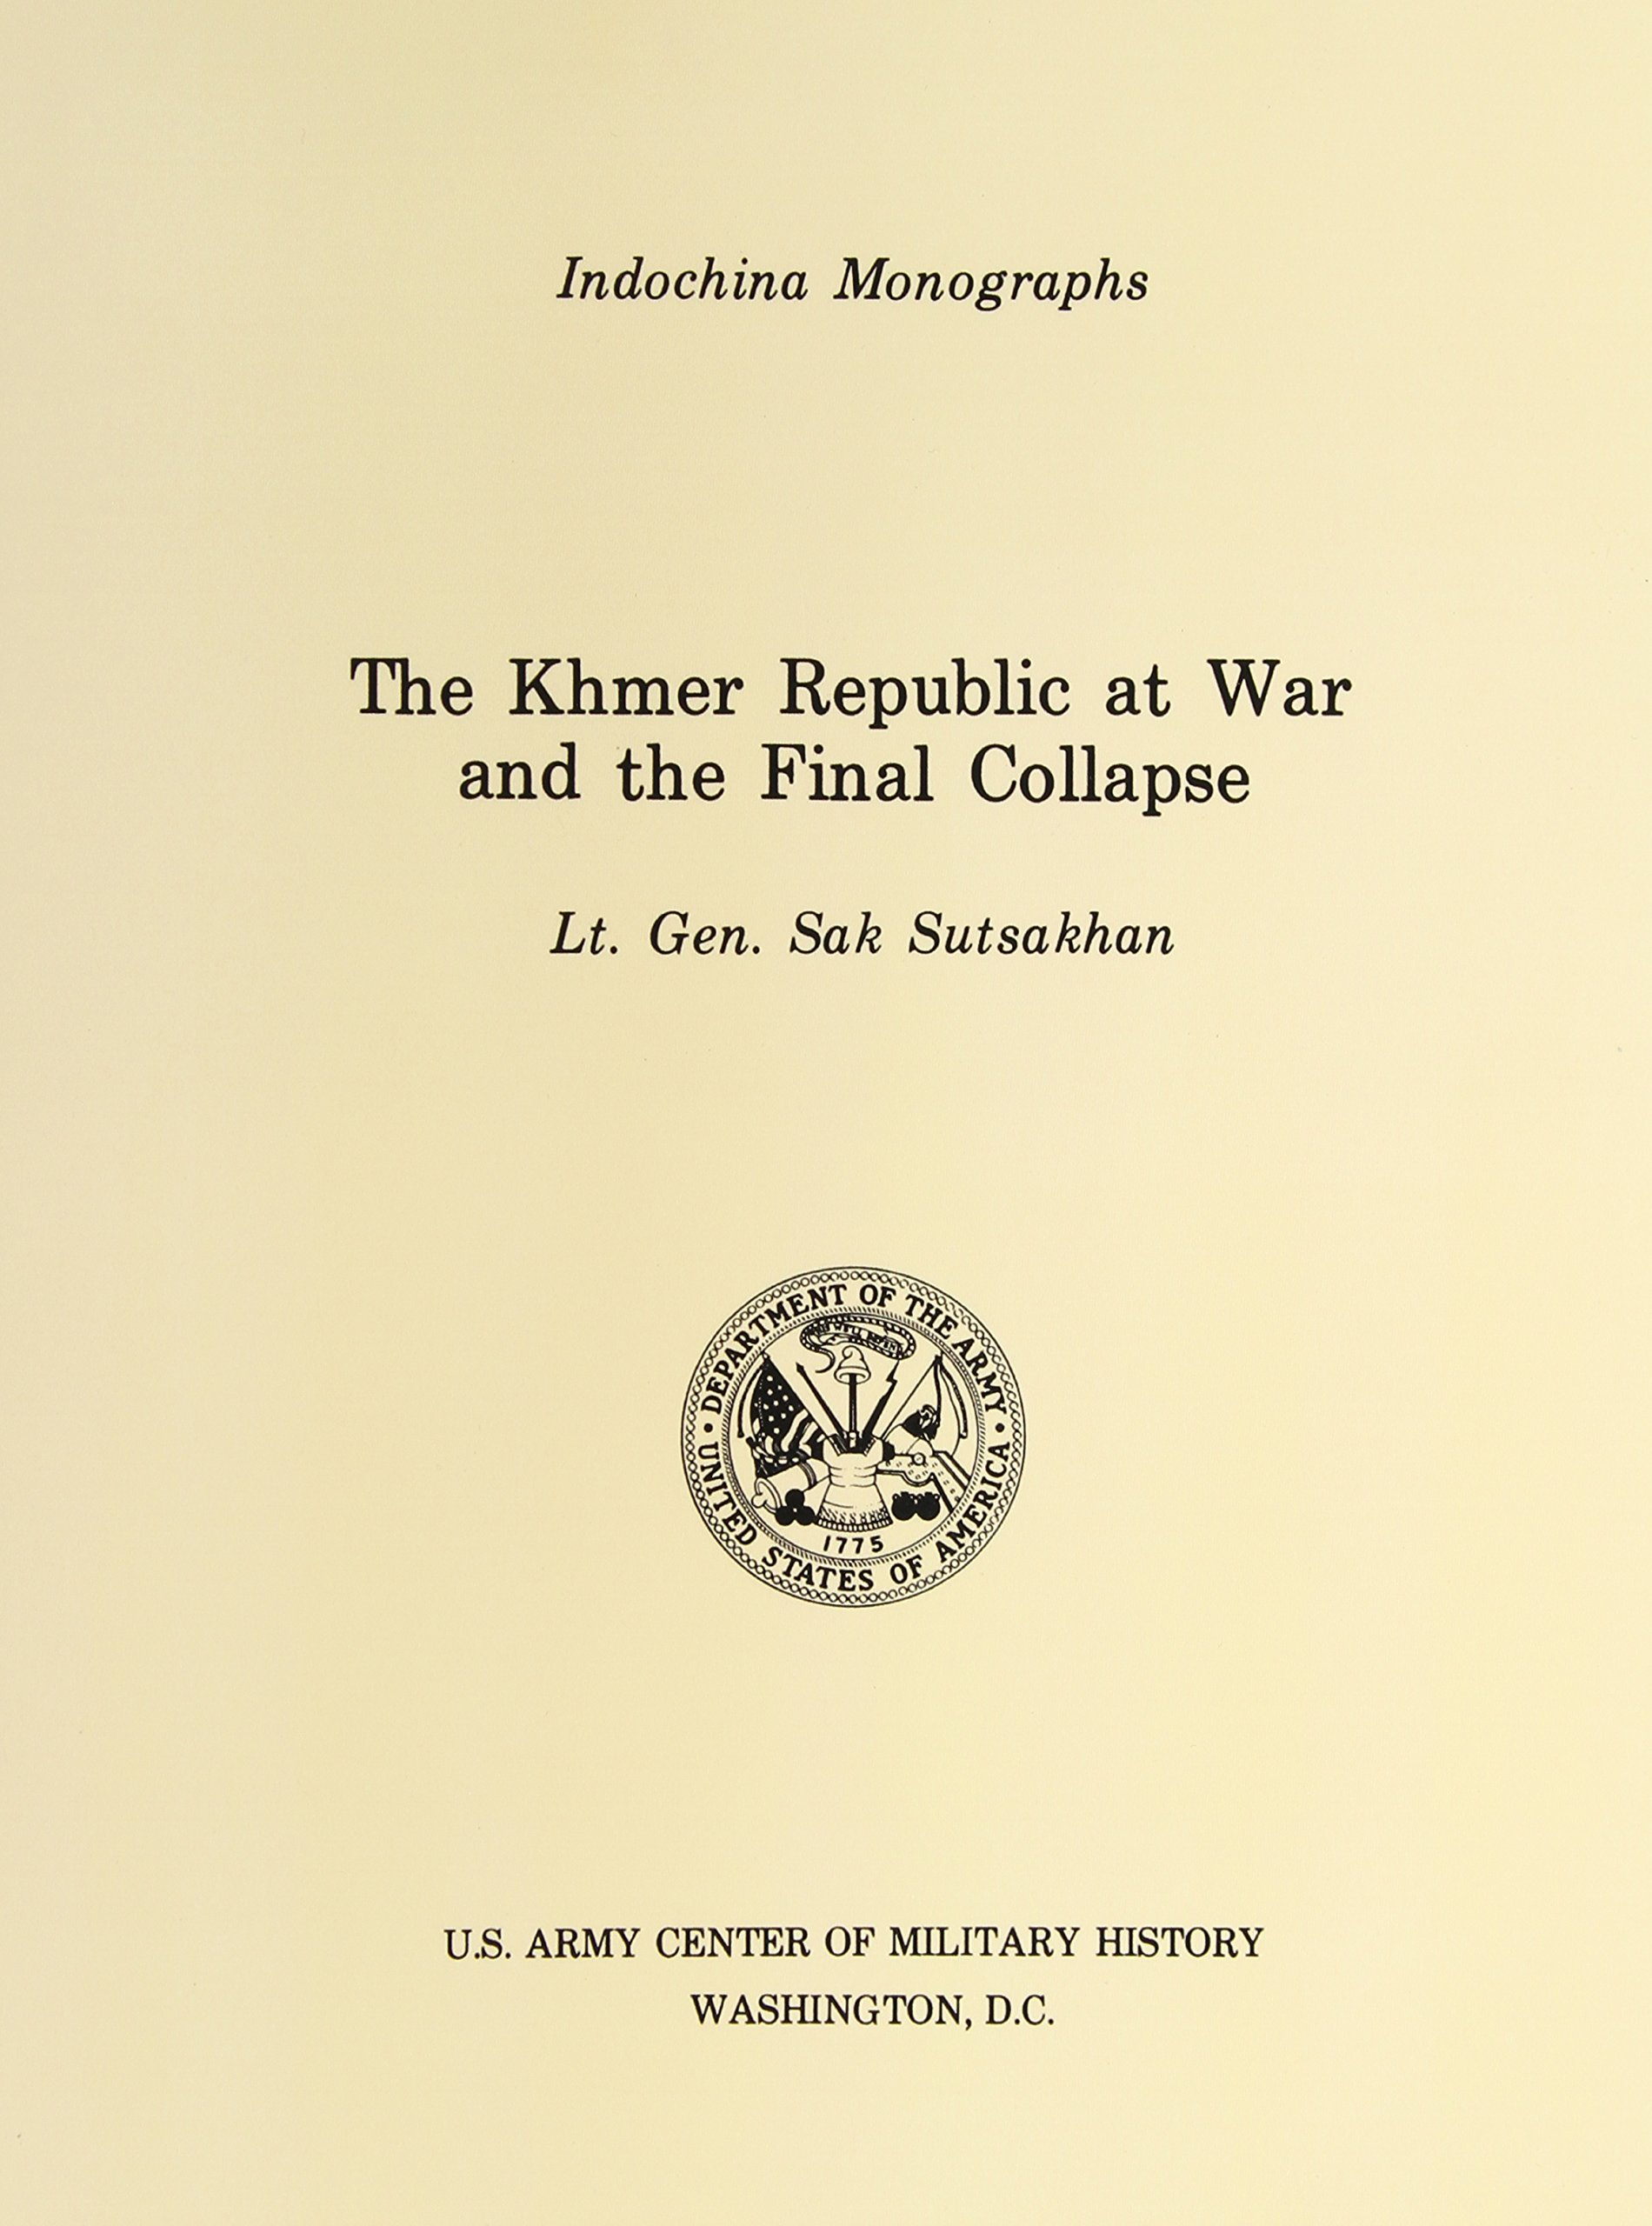 The Khmer Republic at War and the Final Collapse (U.S. Army Center for Military History Indochina Monograph series) pdf